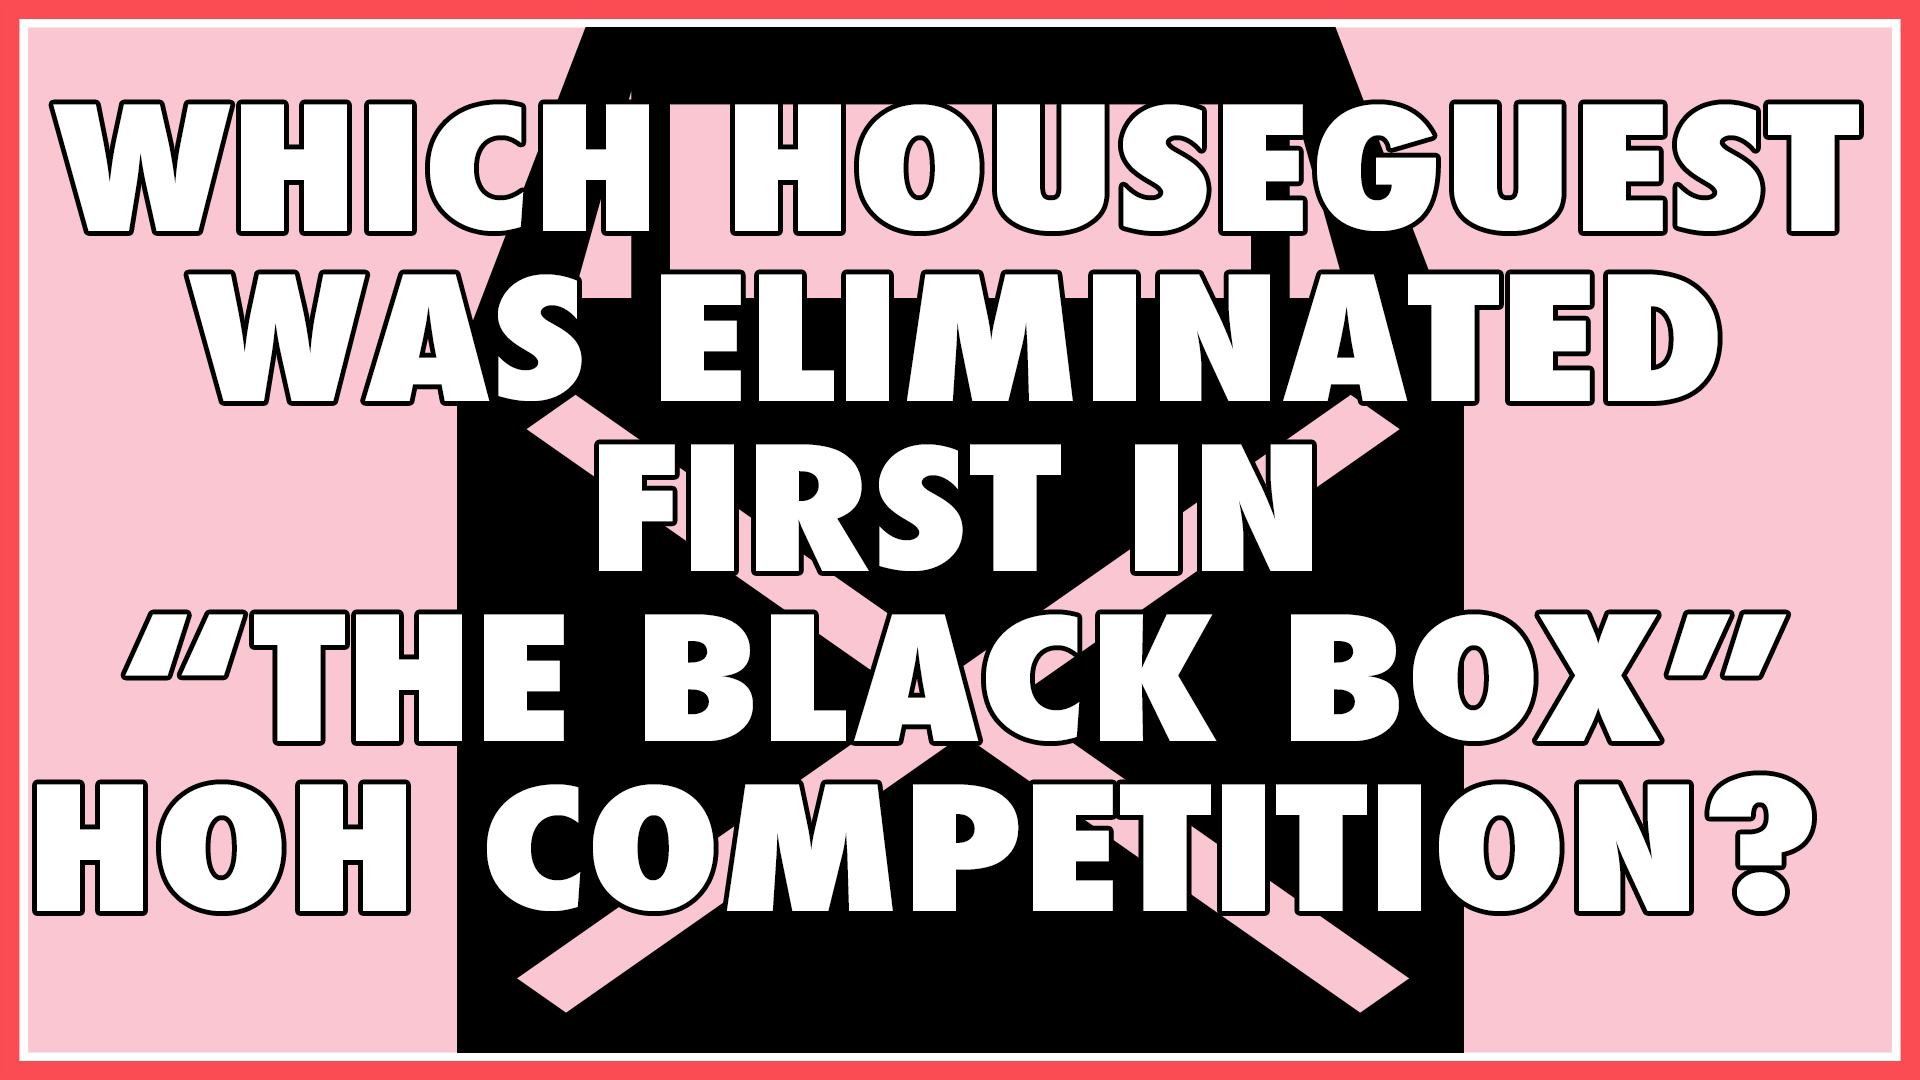 Which Houseguest was eliminated first in